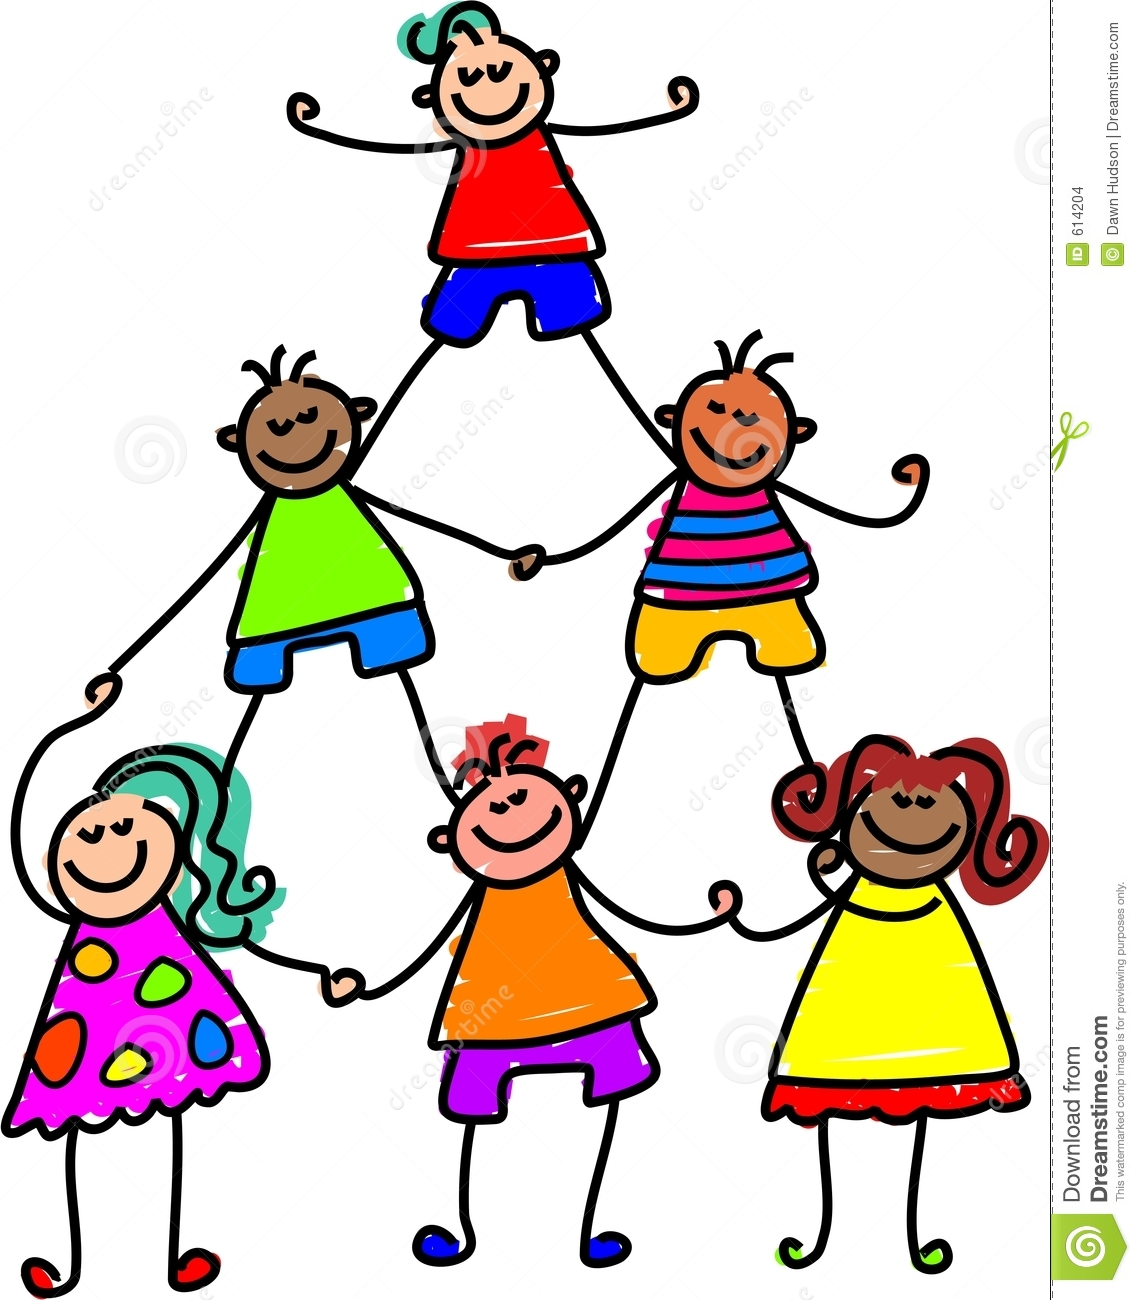 students working together clipart | clipart panda - free clipart images